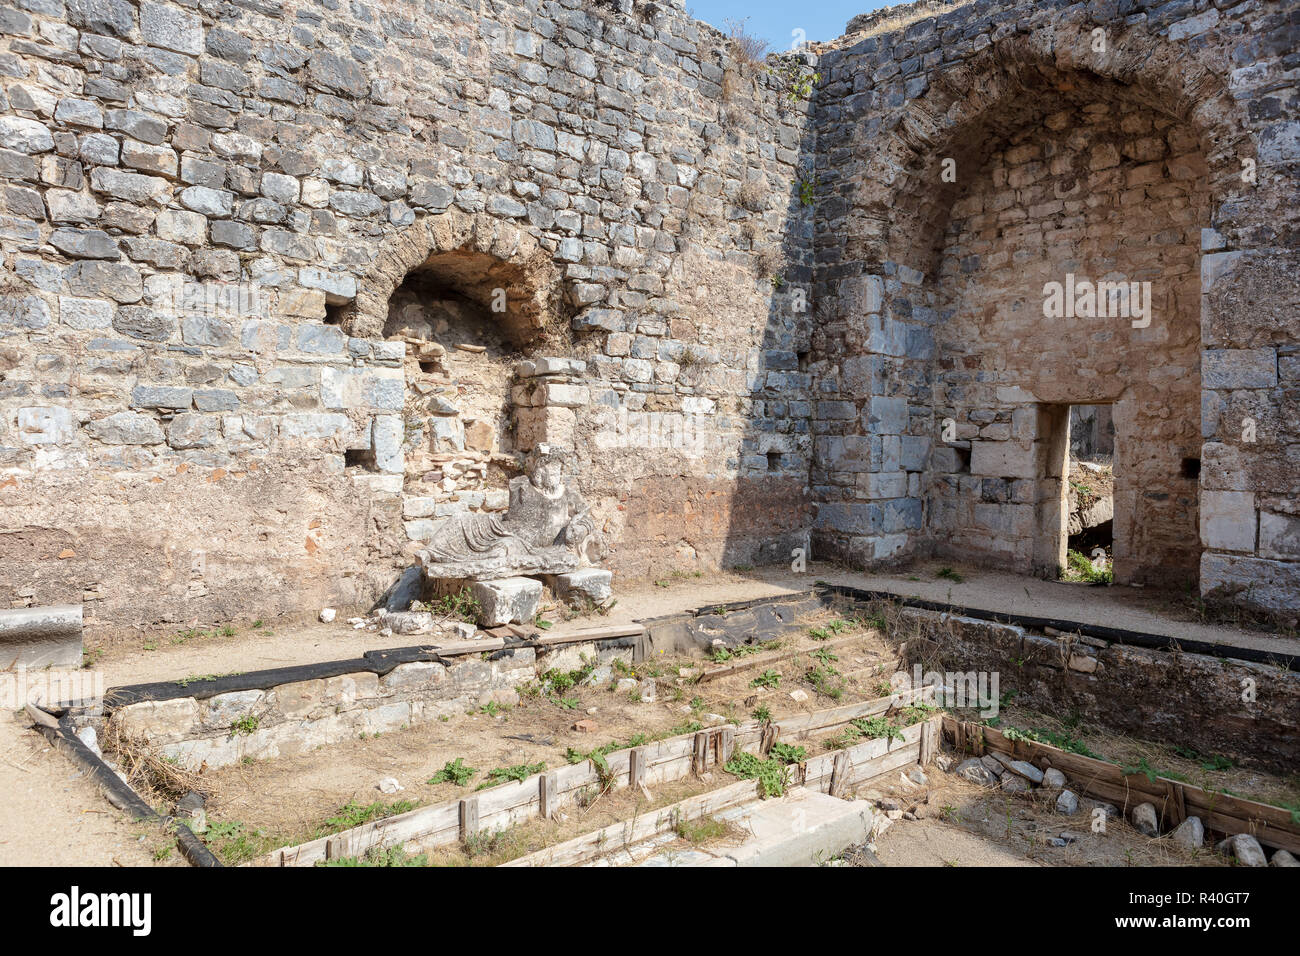 Sculpture  of the river god Maindros at the ruins of Faustina Baths in Miletus in the Aydin Province, Turkey. - Stock Image